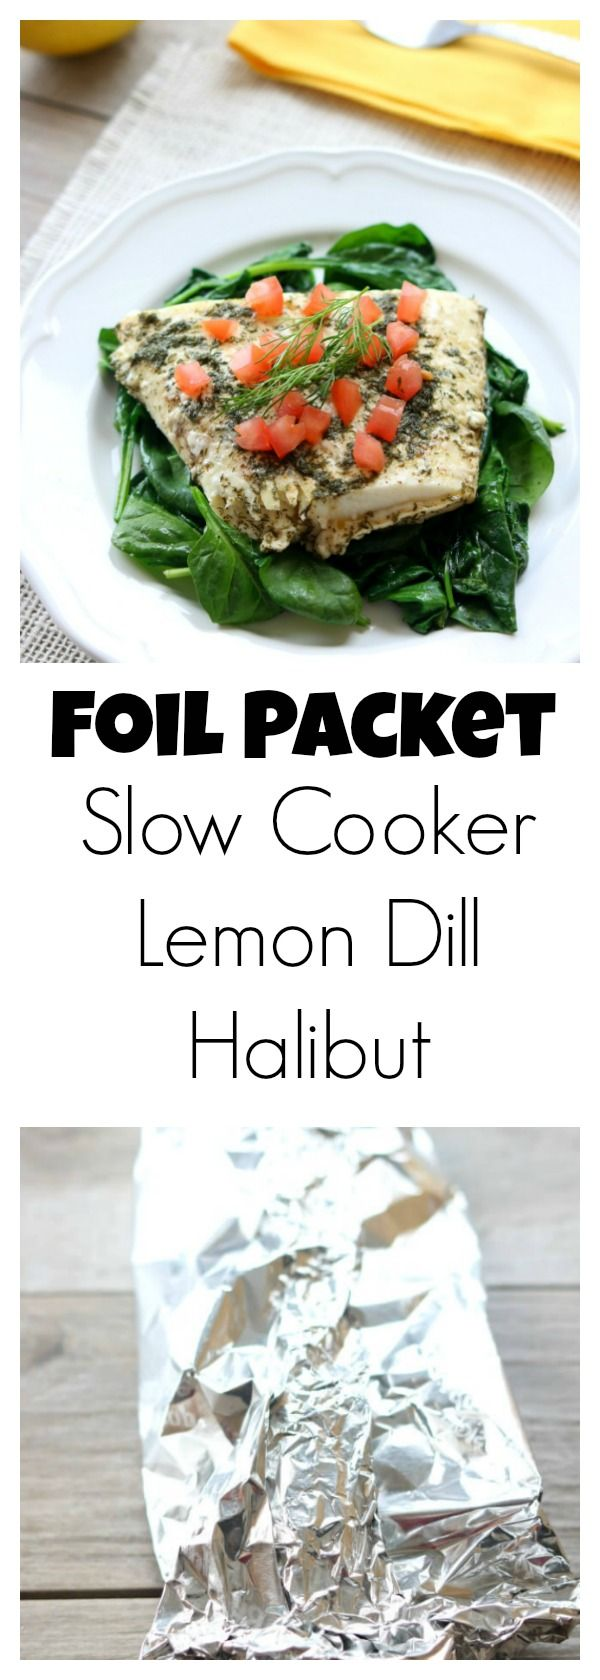 Slow Cooker Lemon Dill Halibut –light and flaky halibut with lemon and dill made in your slow cooker inside a foil packet. No fishy smelling house and super easy clean up makes this a winning way to make fish. @alaskaseafood #AskForAlaska #IC #ad